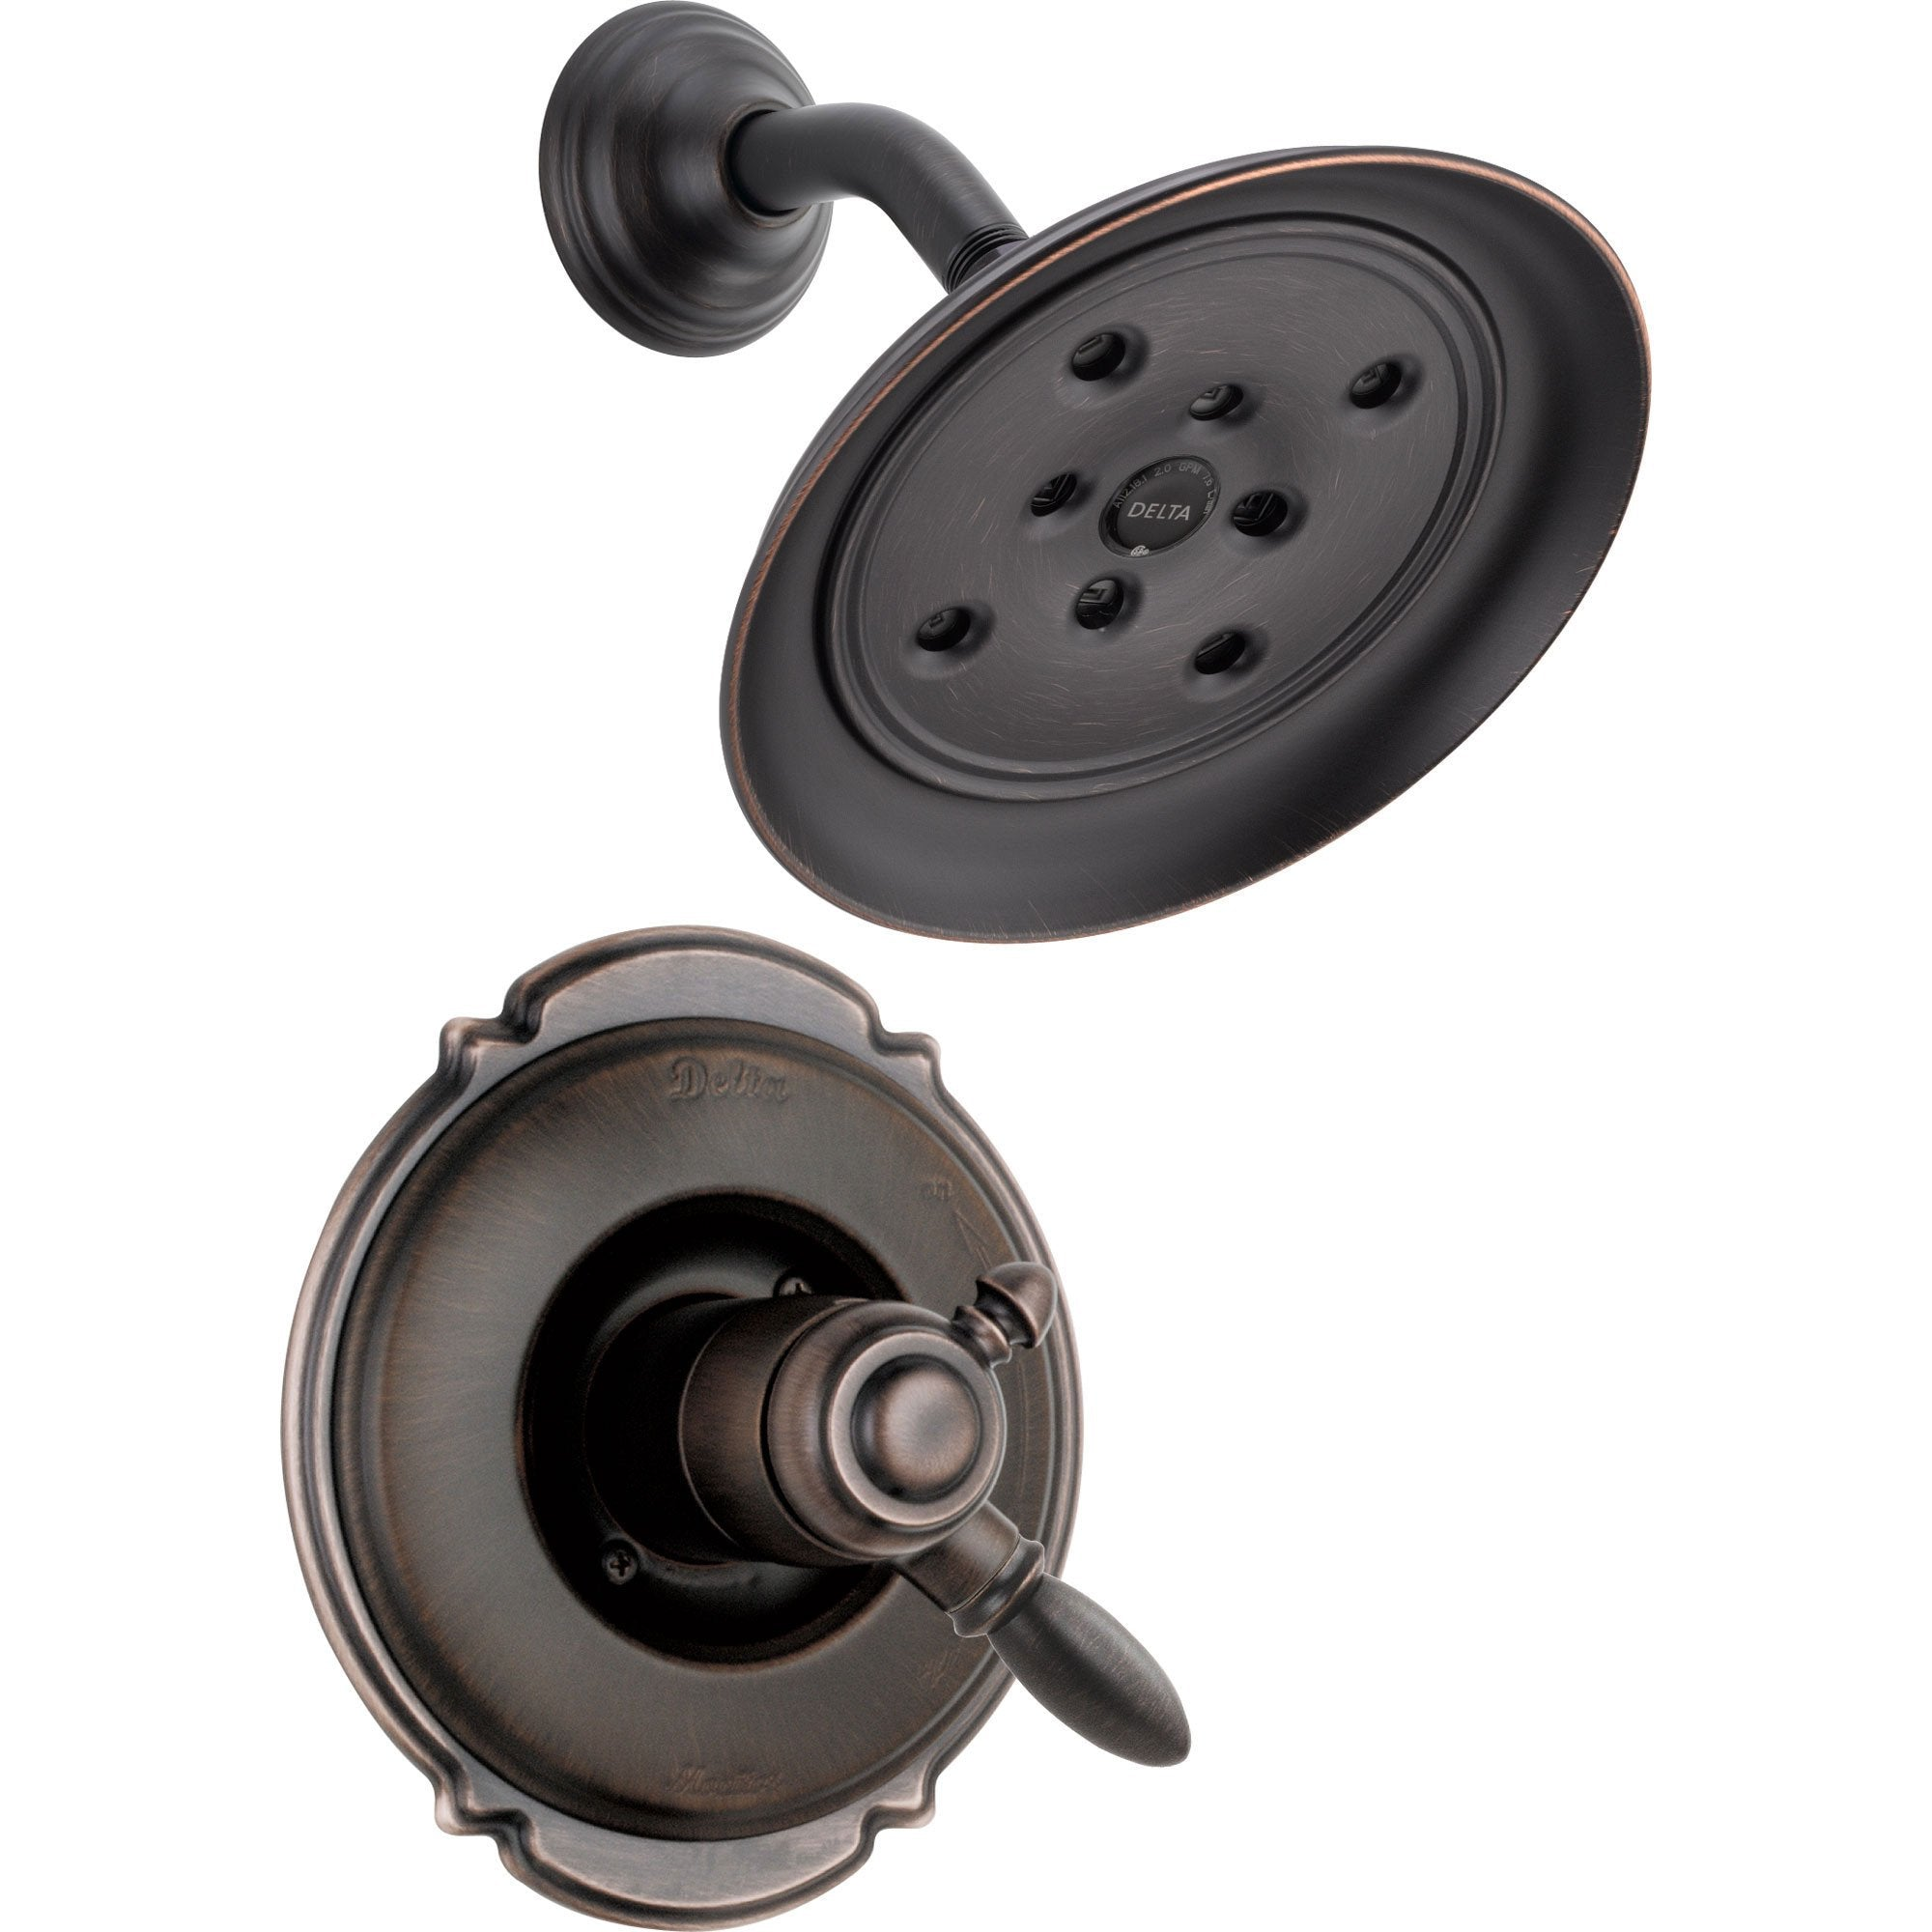 Delta Victorian Dual Control Temp/Volume Venetian Bronze Shower with Valve D700V